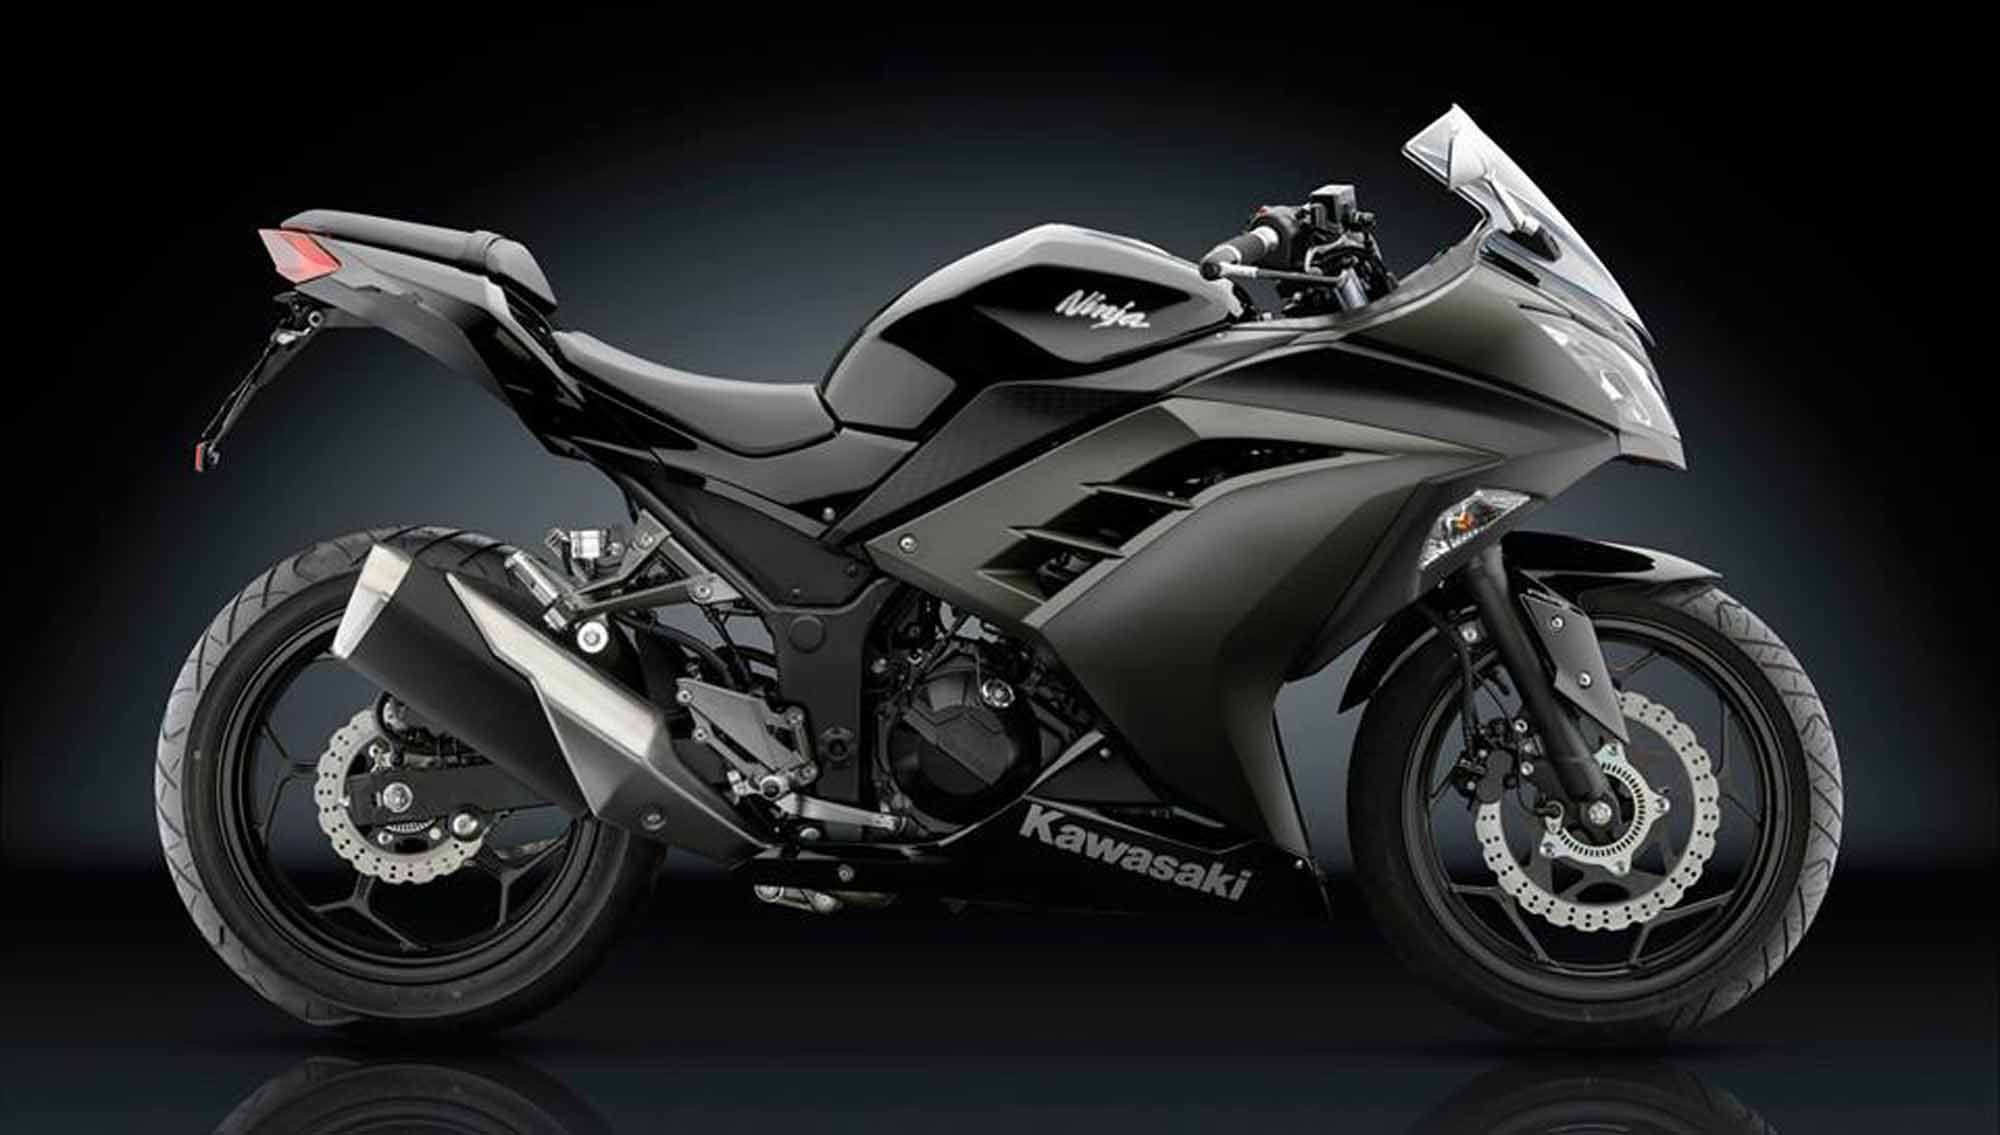 rizoma f r kawasaki ninja 300 motorrad news. Black Bedroom Furniture Sets. Home Design Ideas